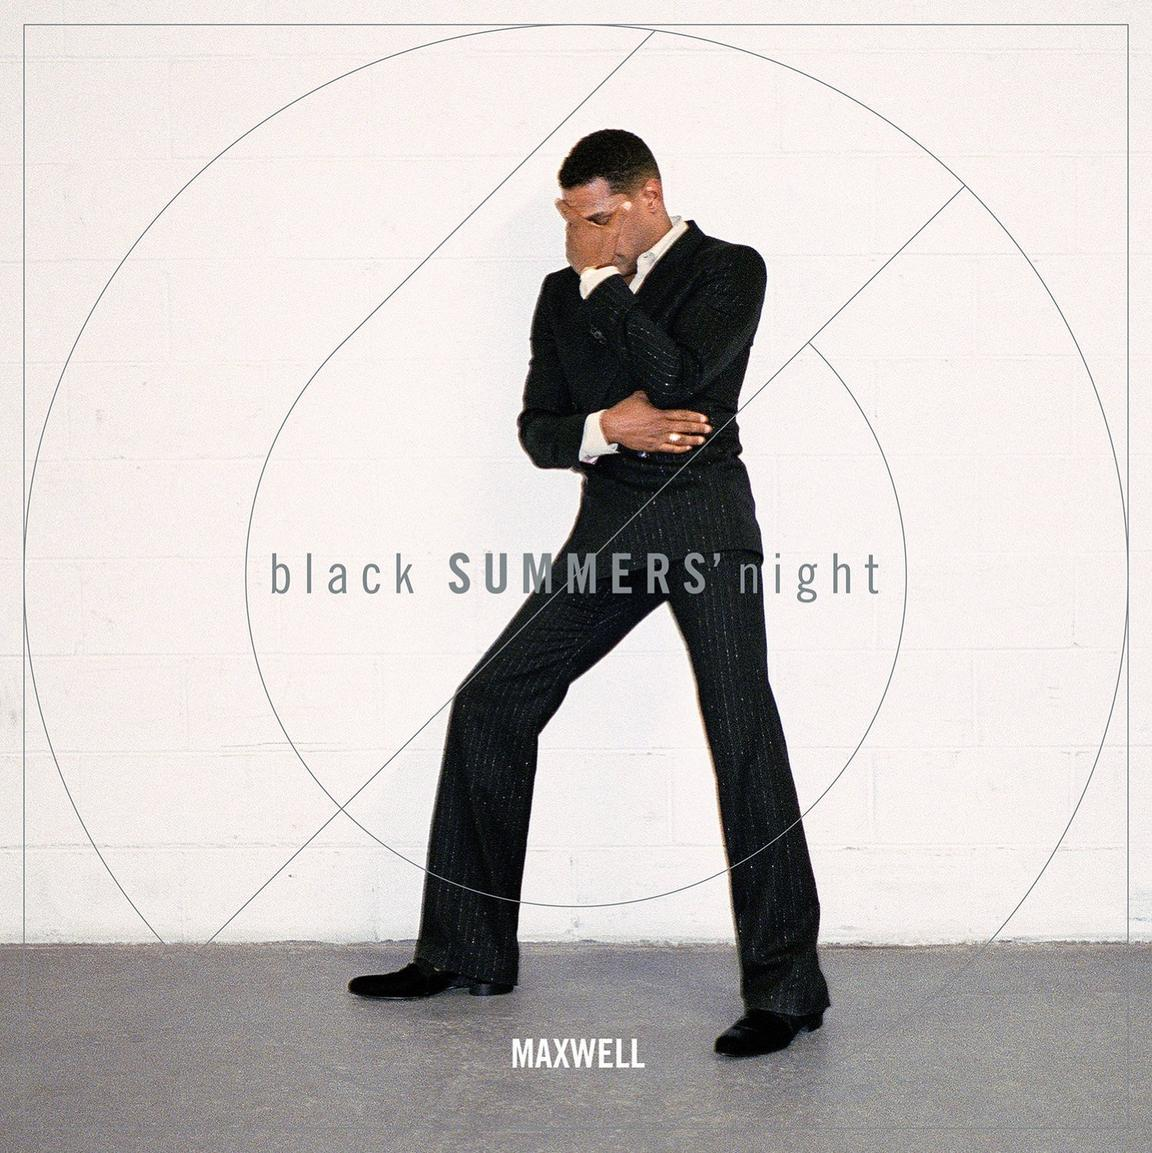 Maxwell / black SUMMERS' night